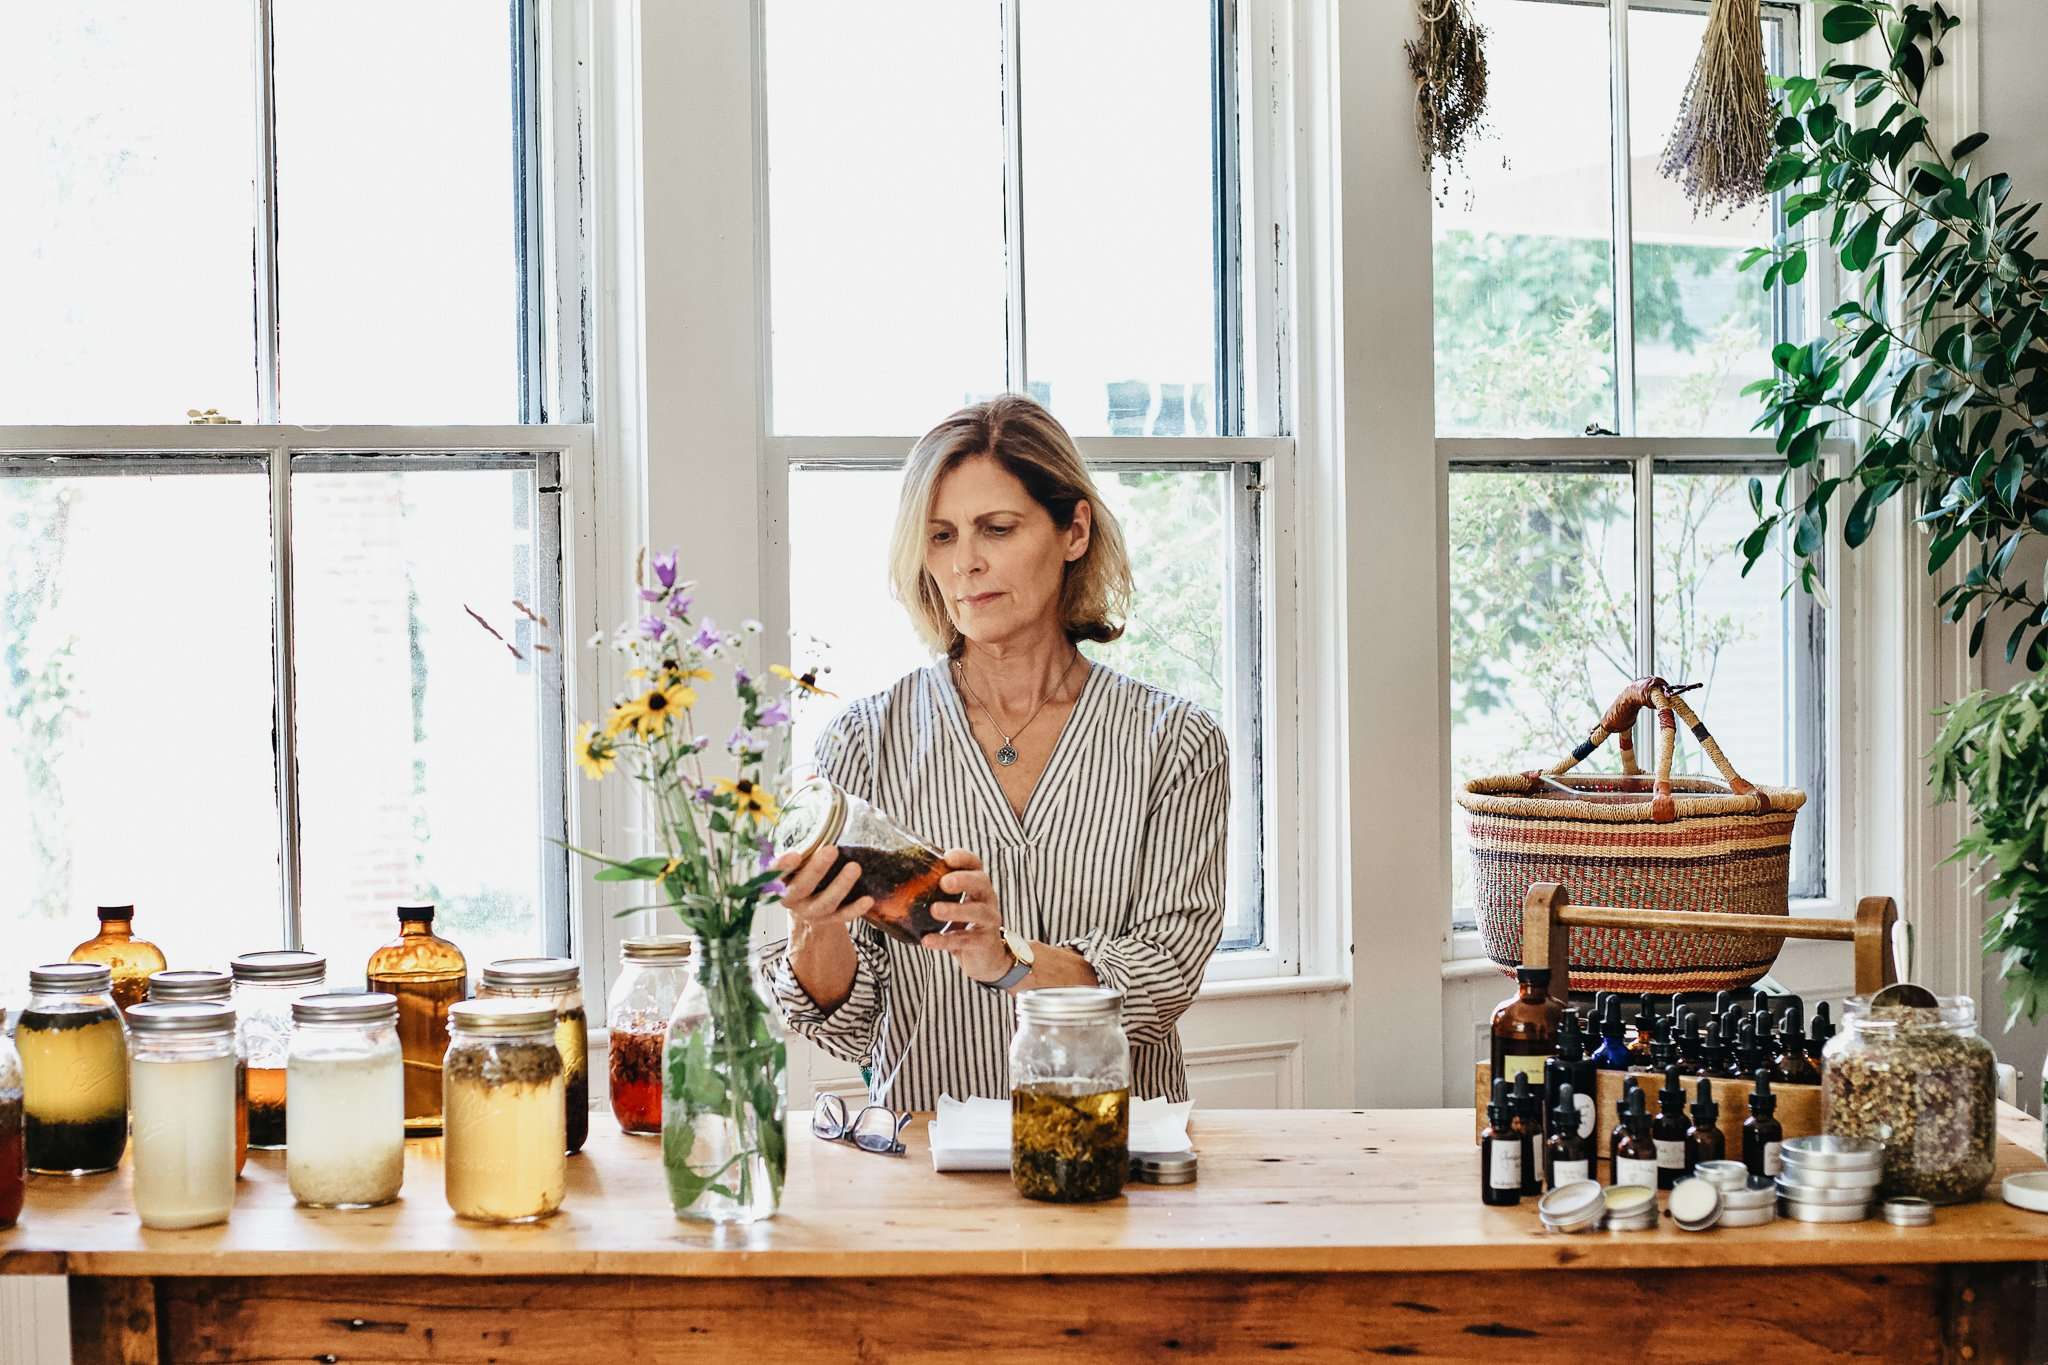 Are you ready to convert your passion and love for herbal knowledge into a successful herbal business?